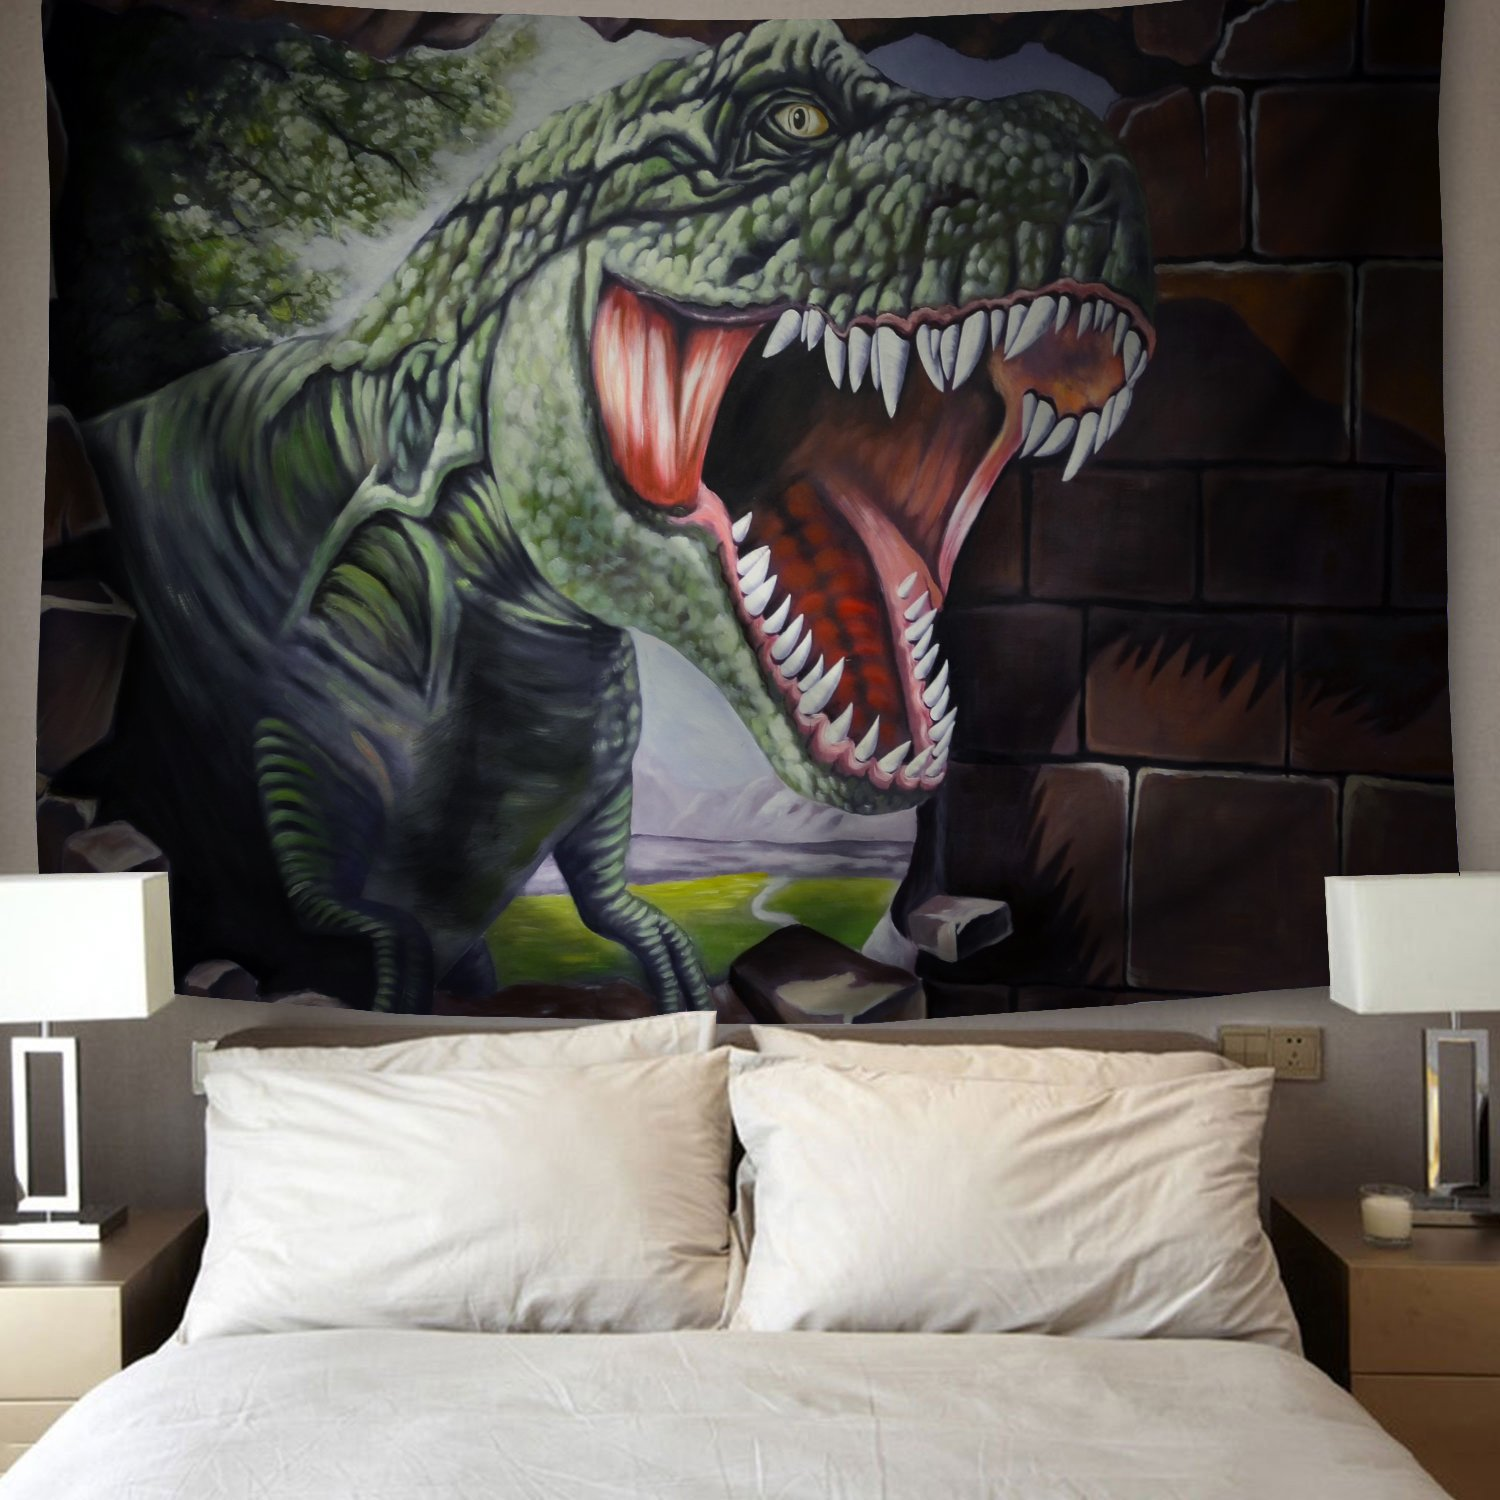 YSJ Tyrannosaurus Rex Tapestry Wall Hanging Decor Animal T-Rex Bedspread Picnic Bedsheet Blanket Home Wall Art Tapestry (230x180 cm / 90x70 inches)